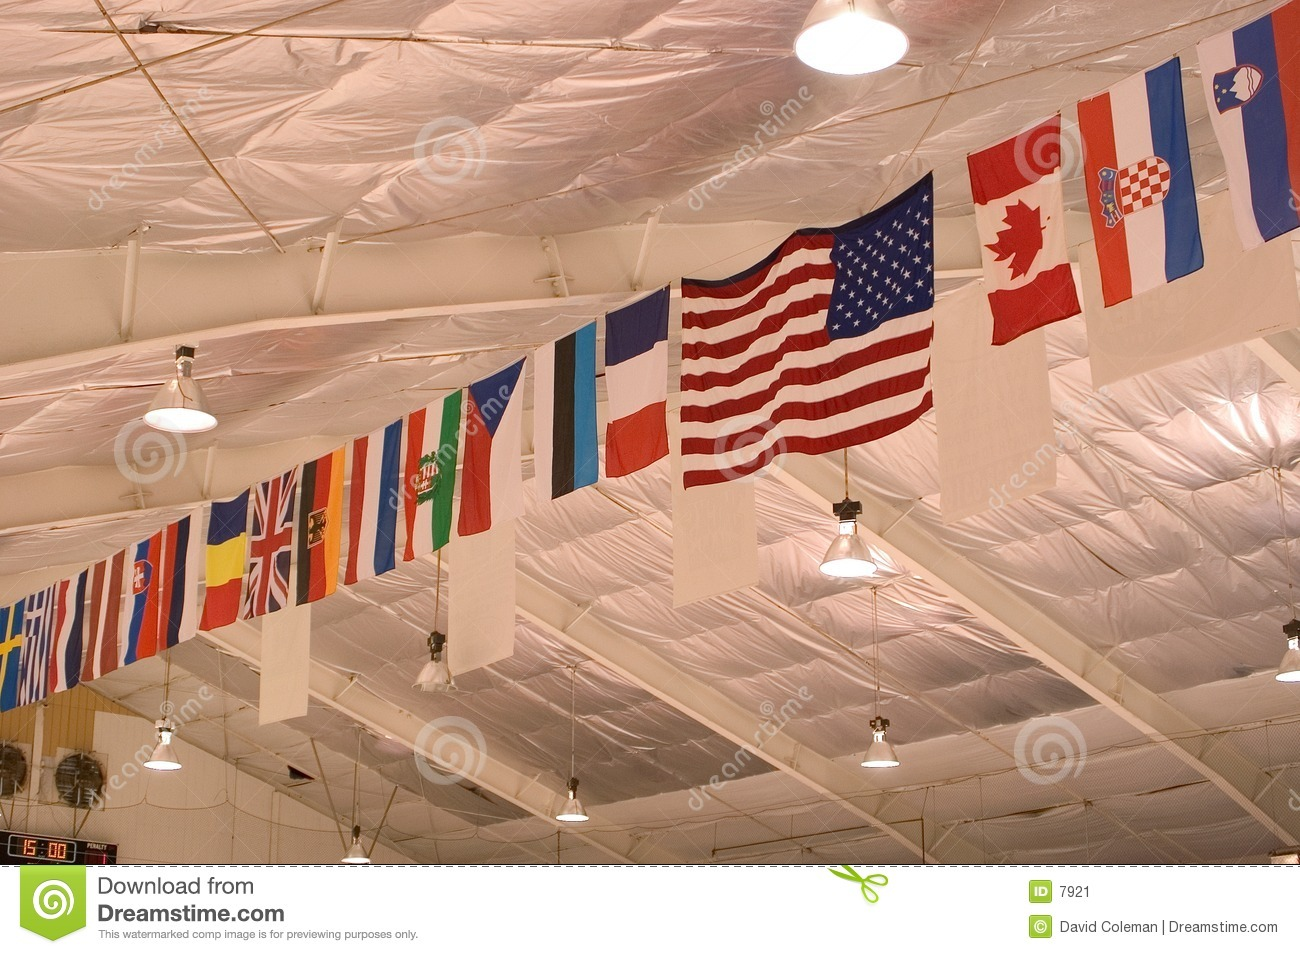 Ceiling flags